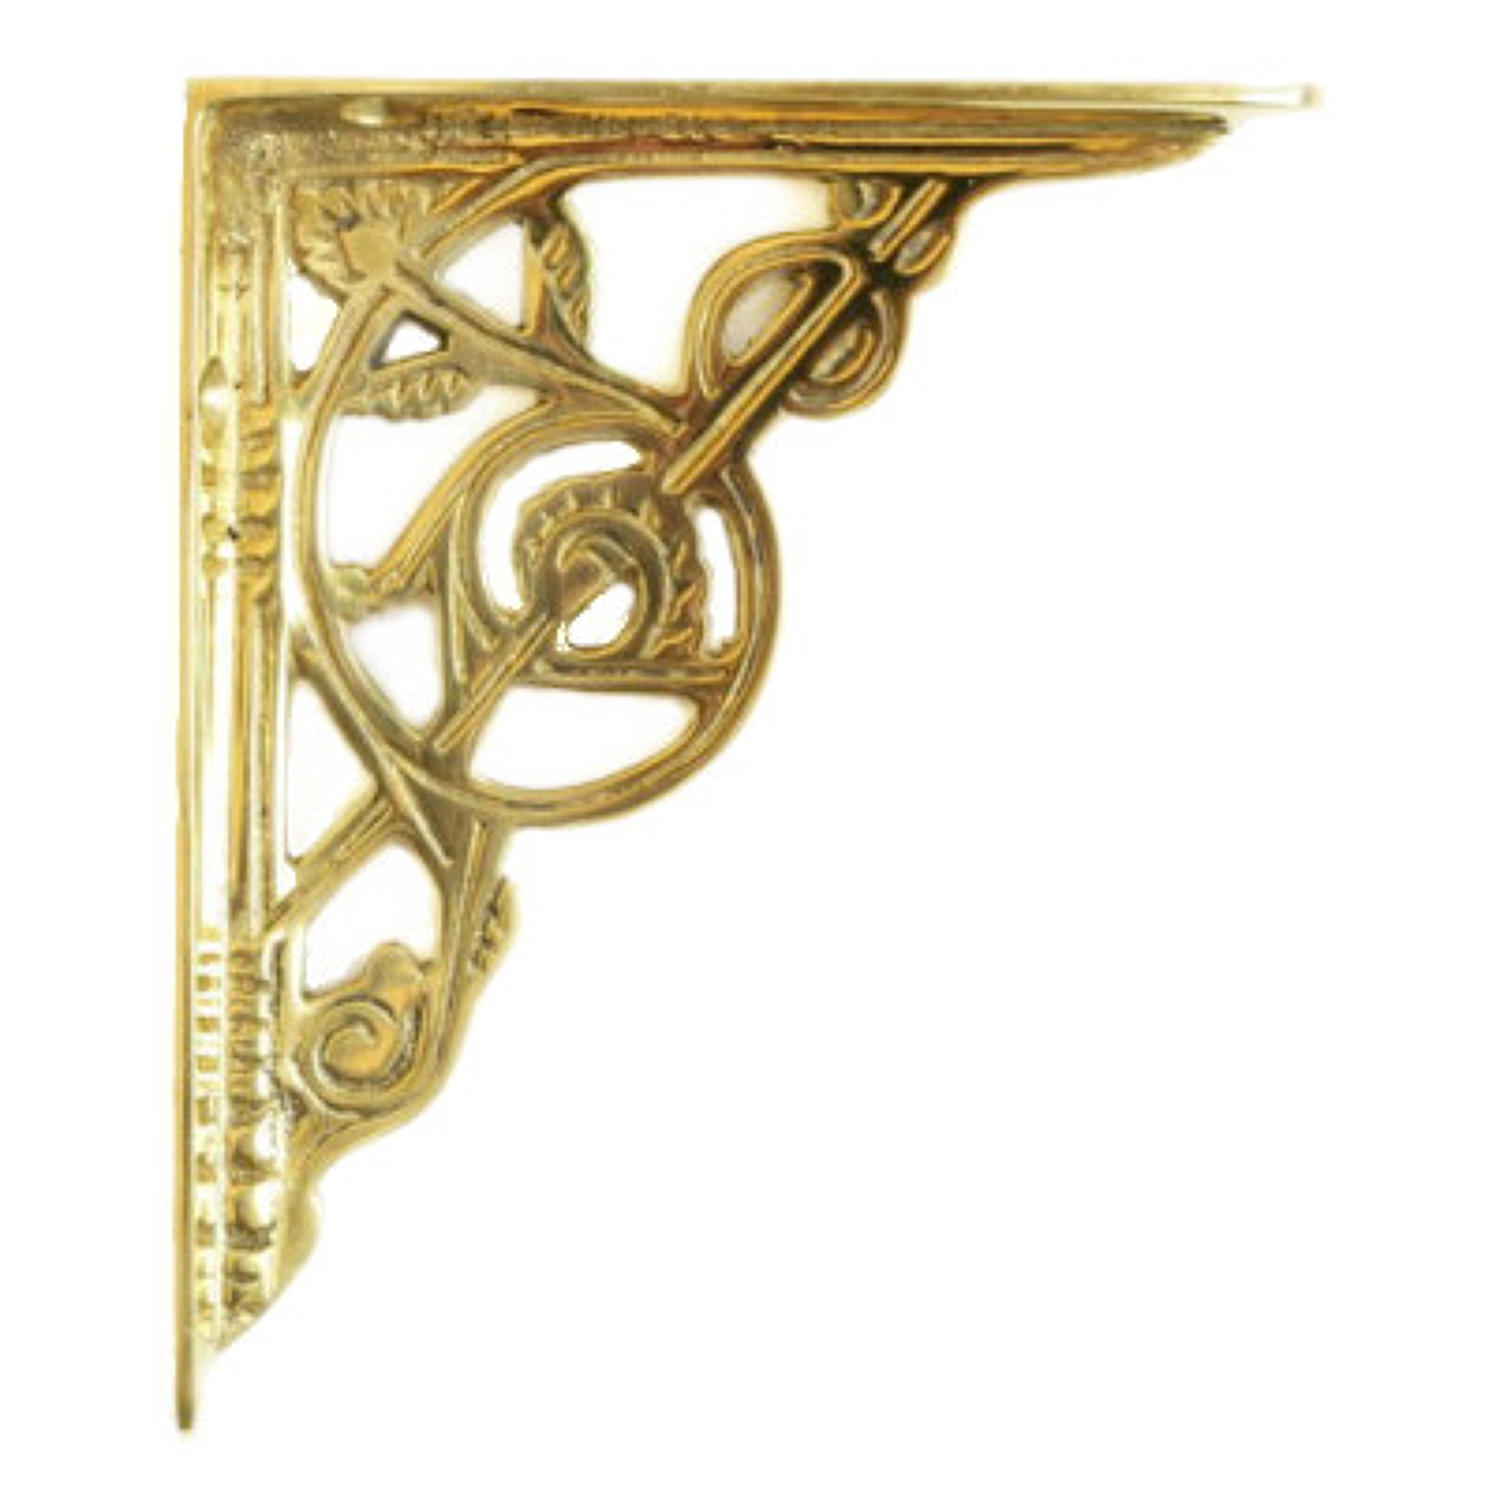 Small Brass Trellis Shelf Bracket